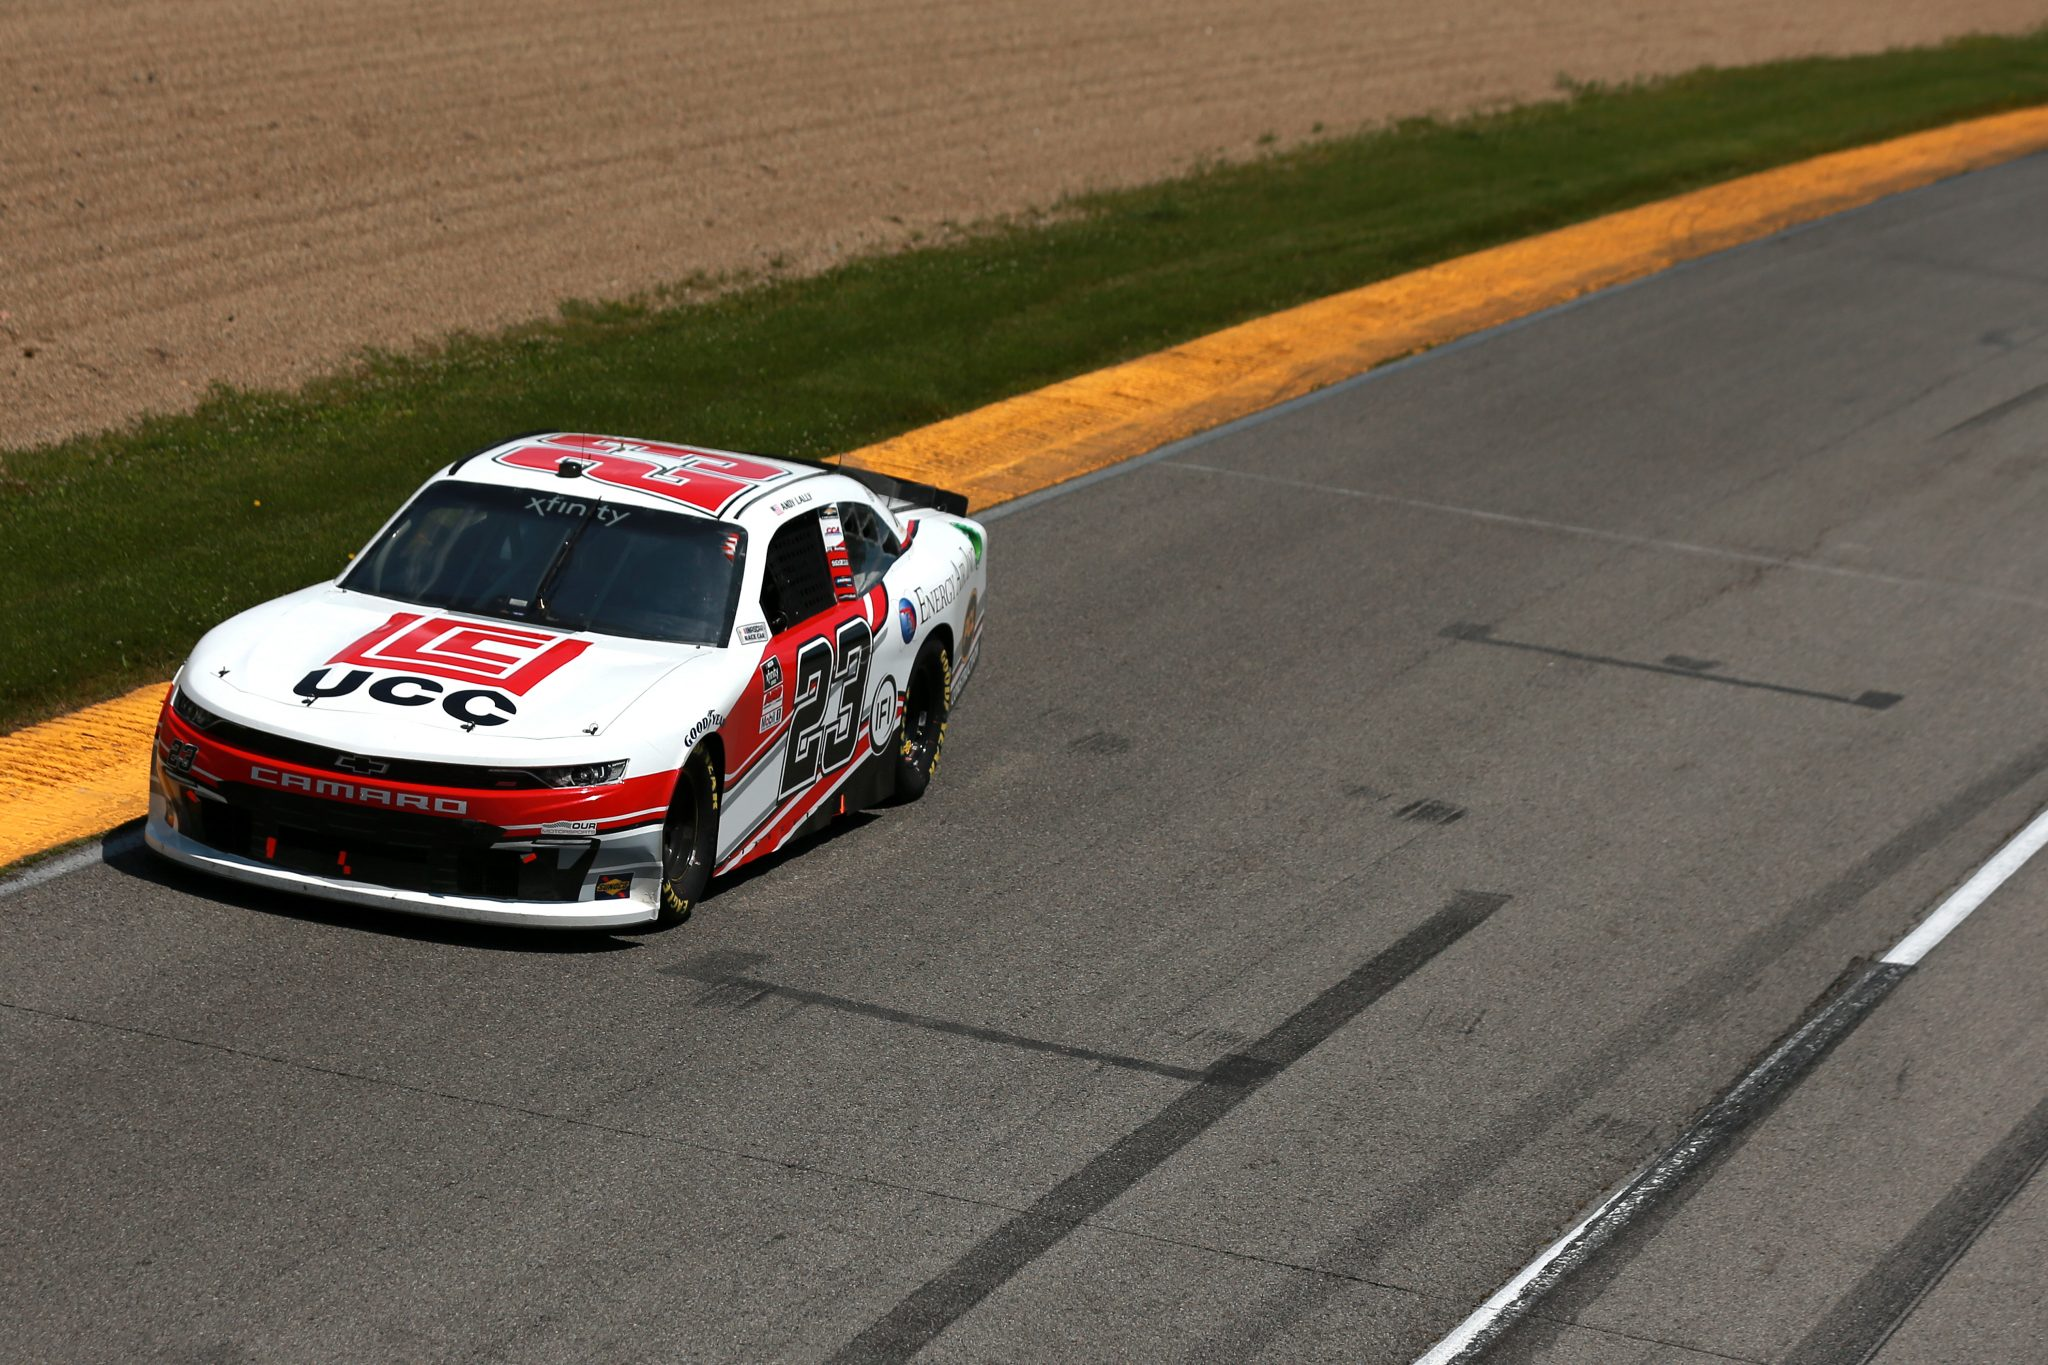 LEXINGTON, OHIO - JUNE 05: Andy Lally, driver of the #23 UCC/Energy Air Inc Chevrolet, drives during the NASCAR Xfinity Series B&L Transport 170 at Mid-Ohio Sports Car Course on June 05, 2021 in Lexington, Ohio. (Photo by Sean Gardner/Getty Images) | Getty Images